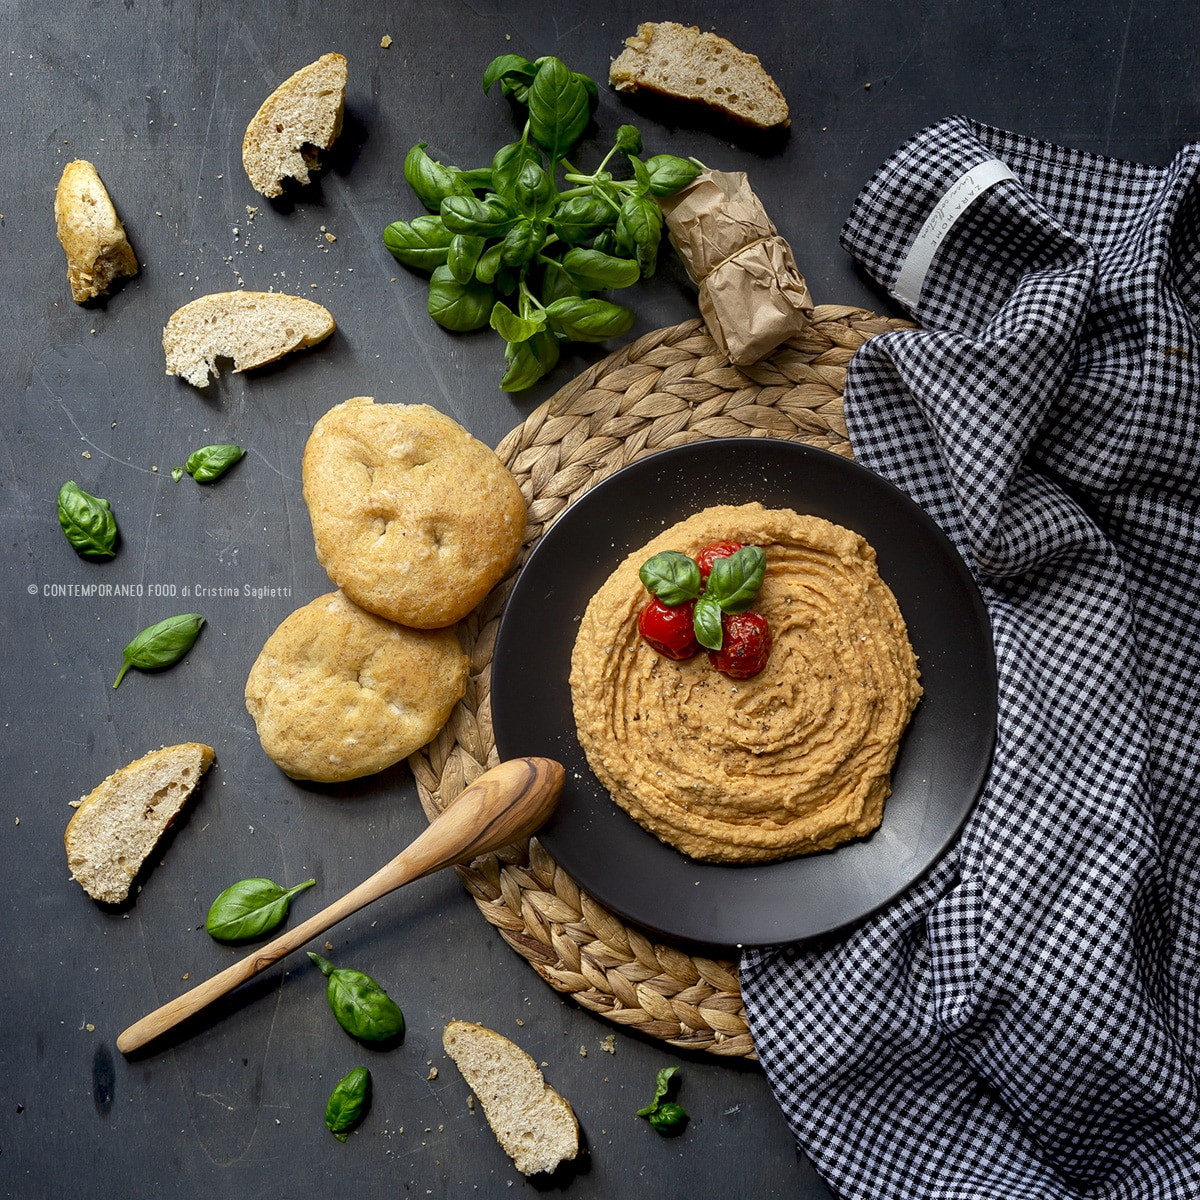 hummus-pomodorini-confit-ricetta-light-vegetariana-dieta-contemporaneo-food